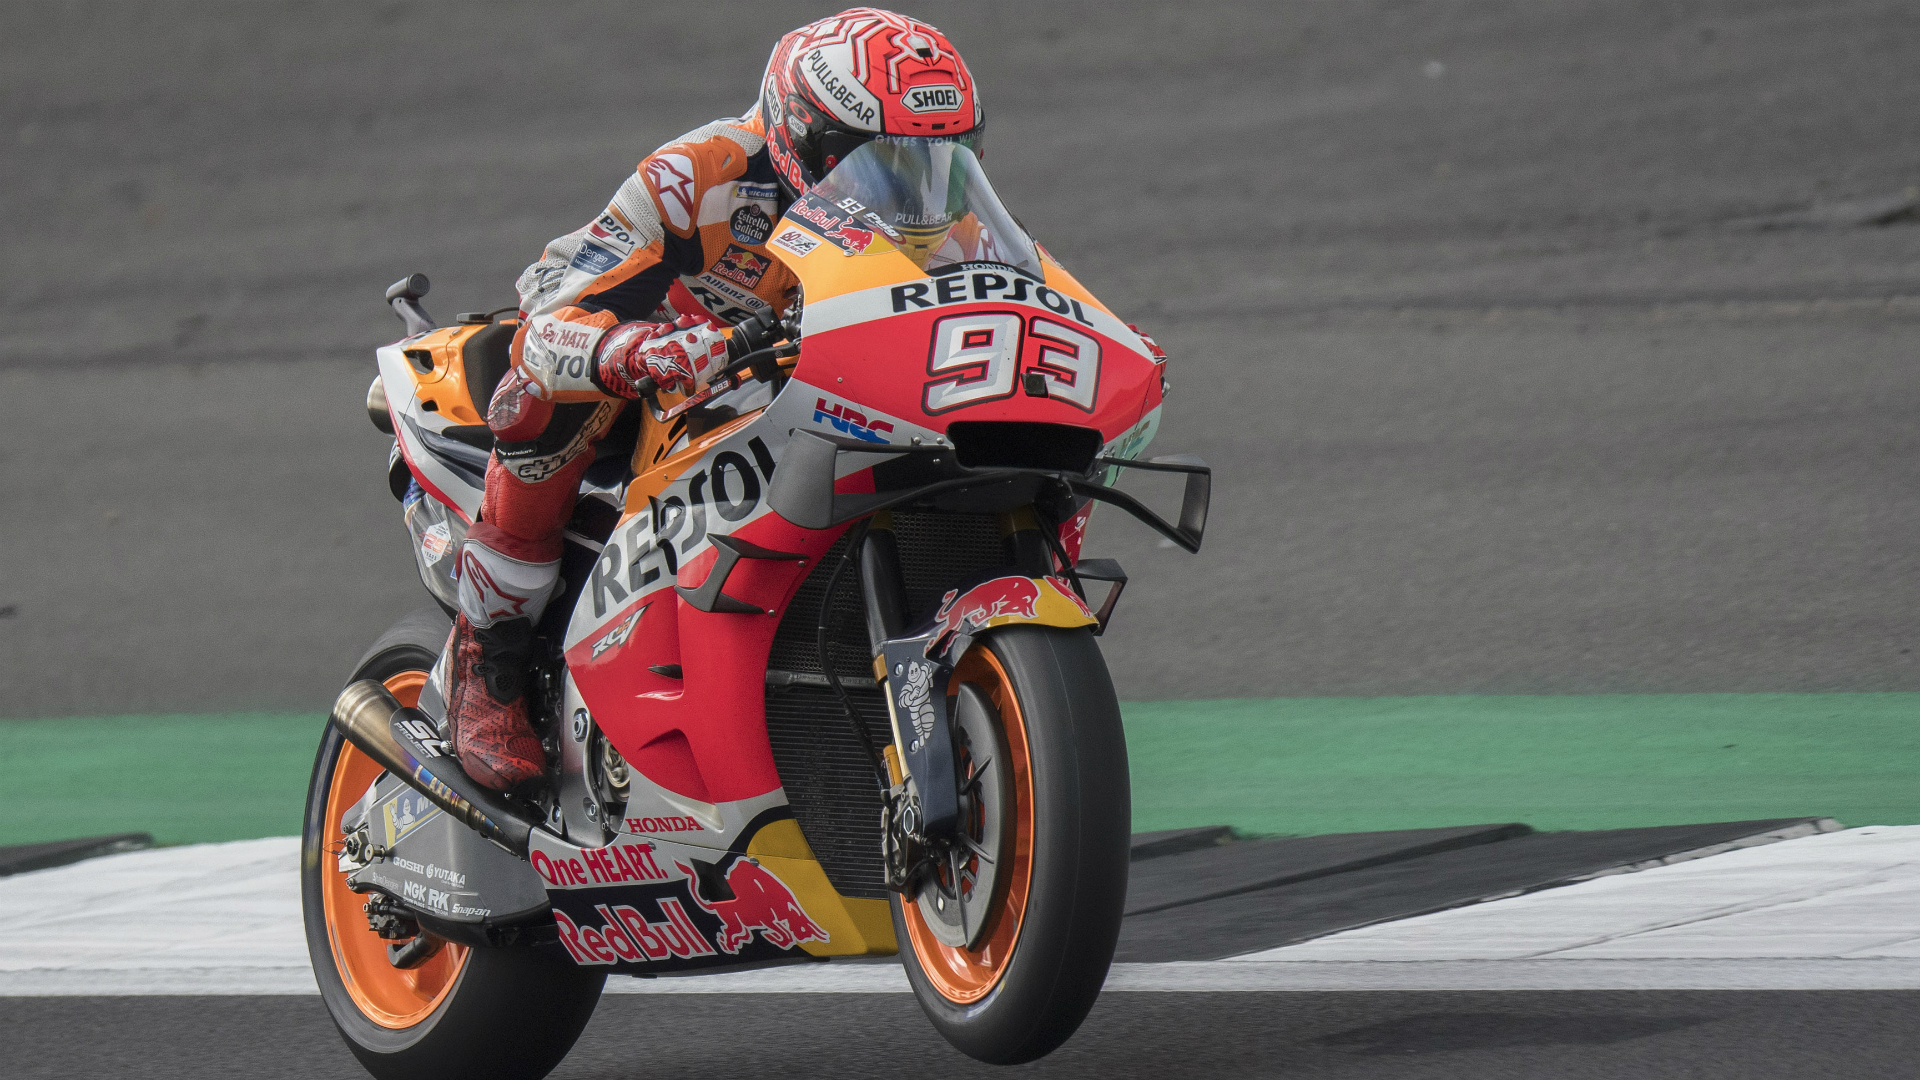 An impressive qualifying session from Valentino Rossi saw him finish second, but Marc Marquez was in a class of his own at Silverstone.